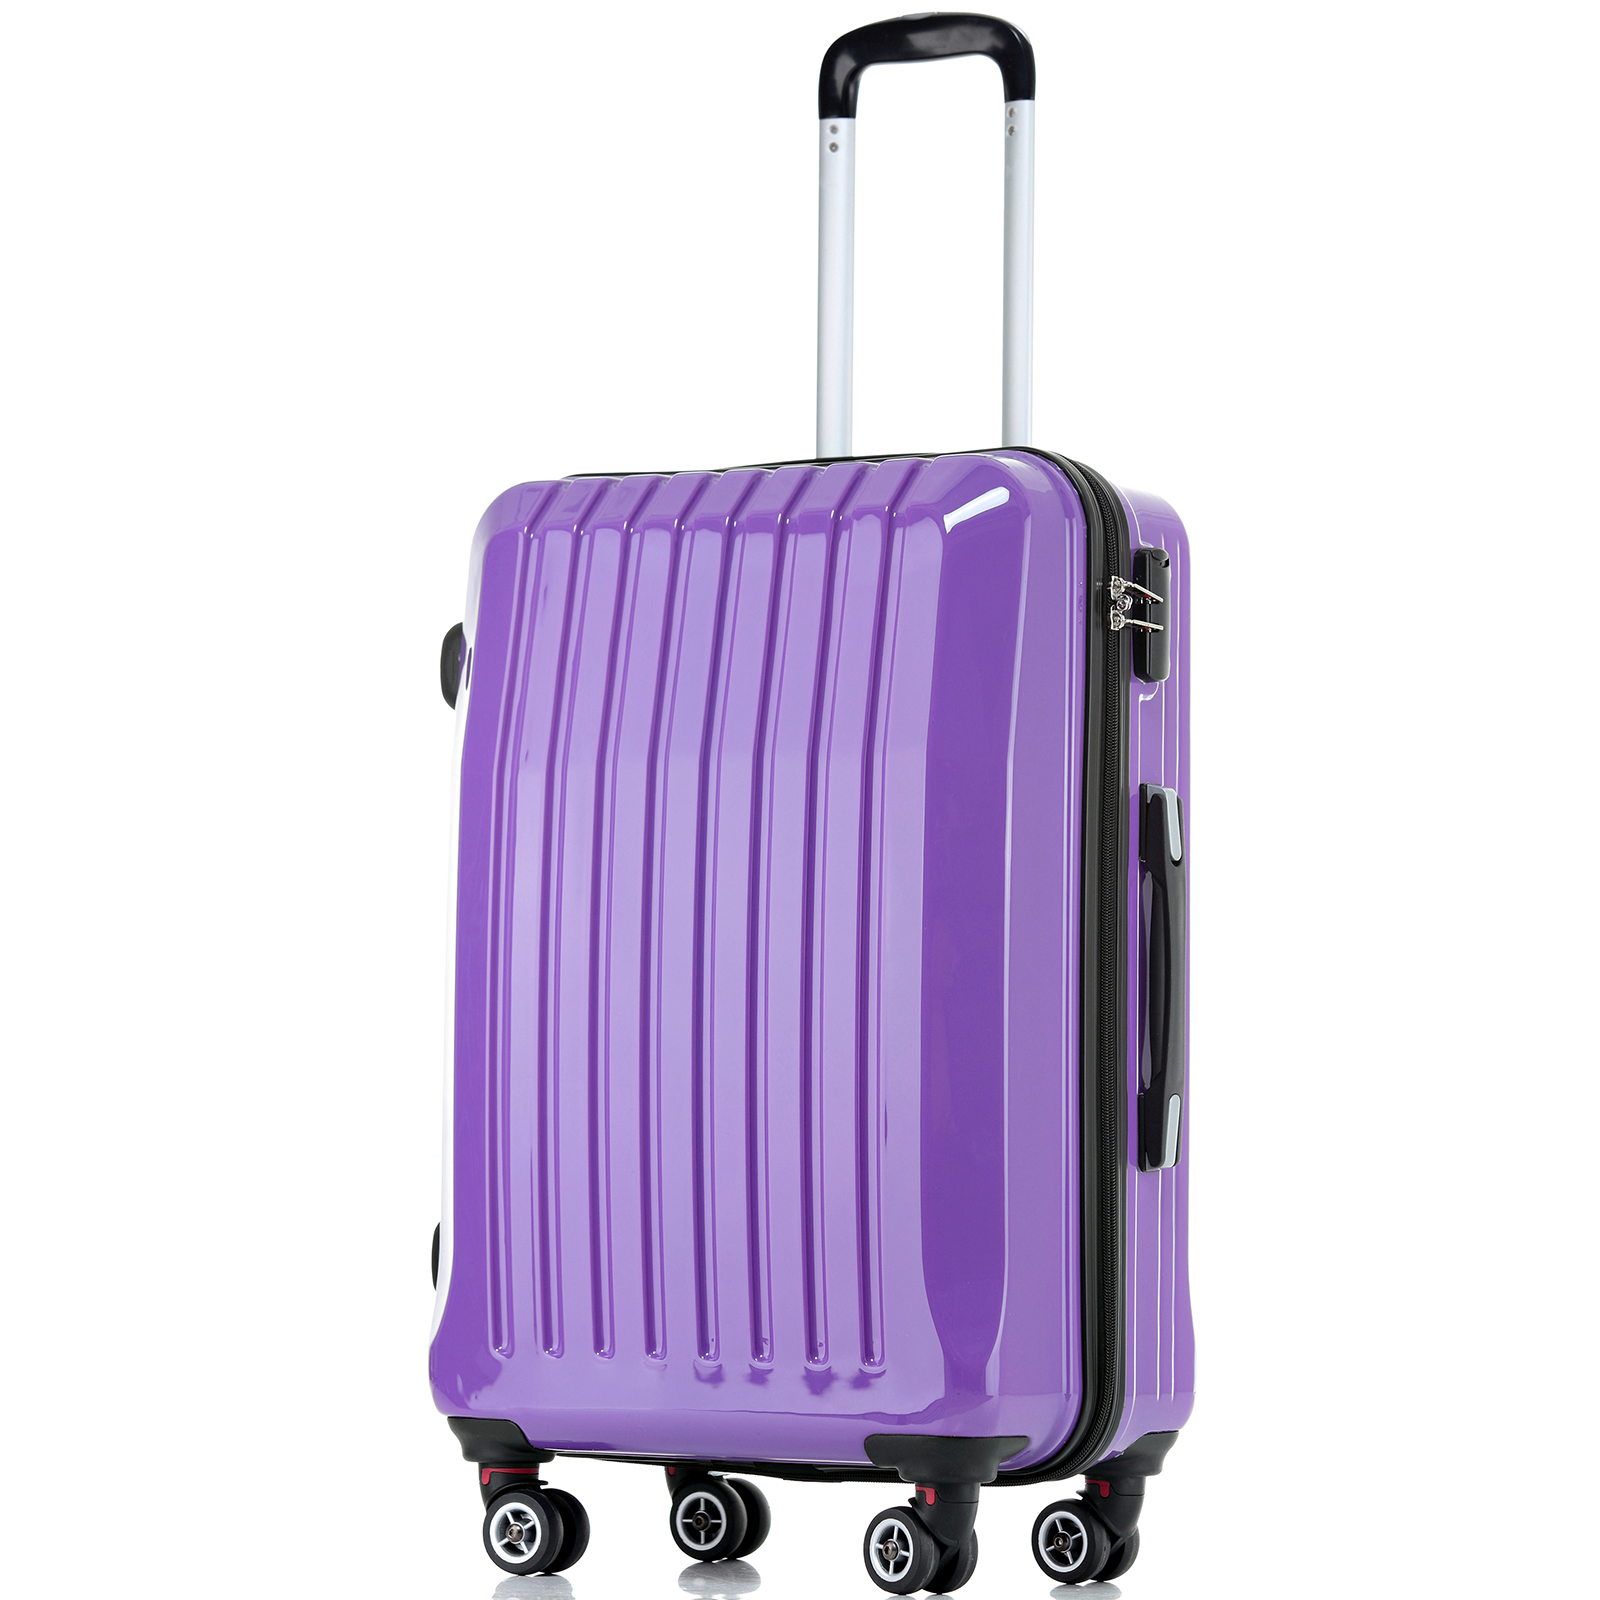 JAM Tourer Hard ABS Case Trolley Luggage Lightweight Baggage ...